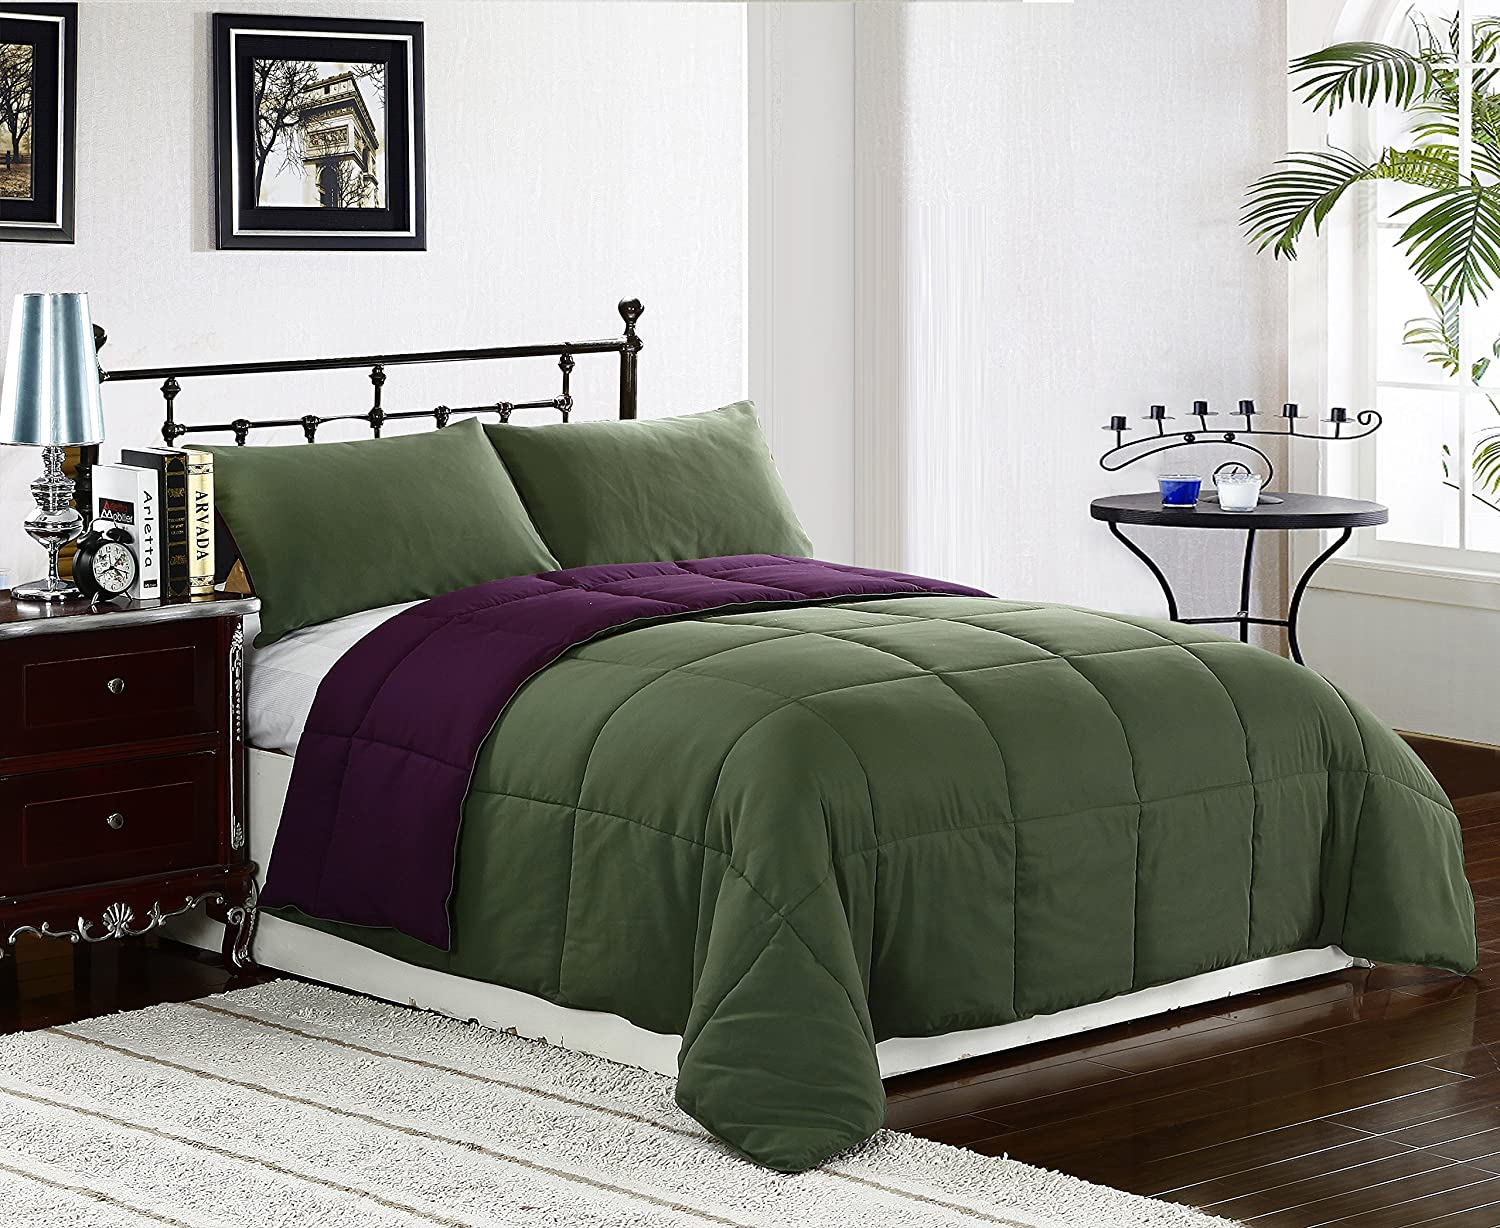 Purple/Green TWIN Size 2-Piece Reversible Down Alternative Comforter Set by Cozy Beddings